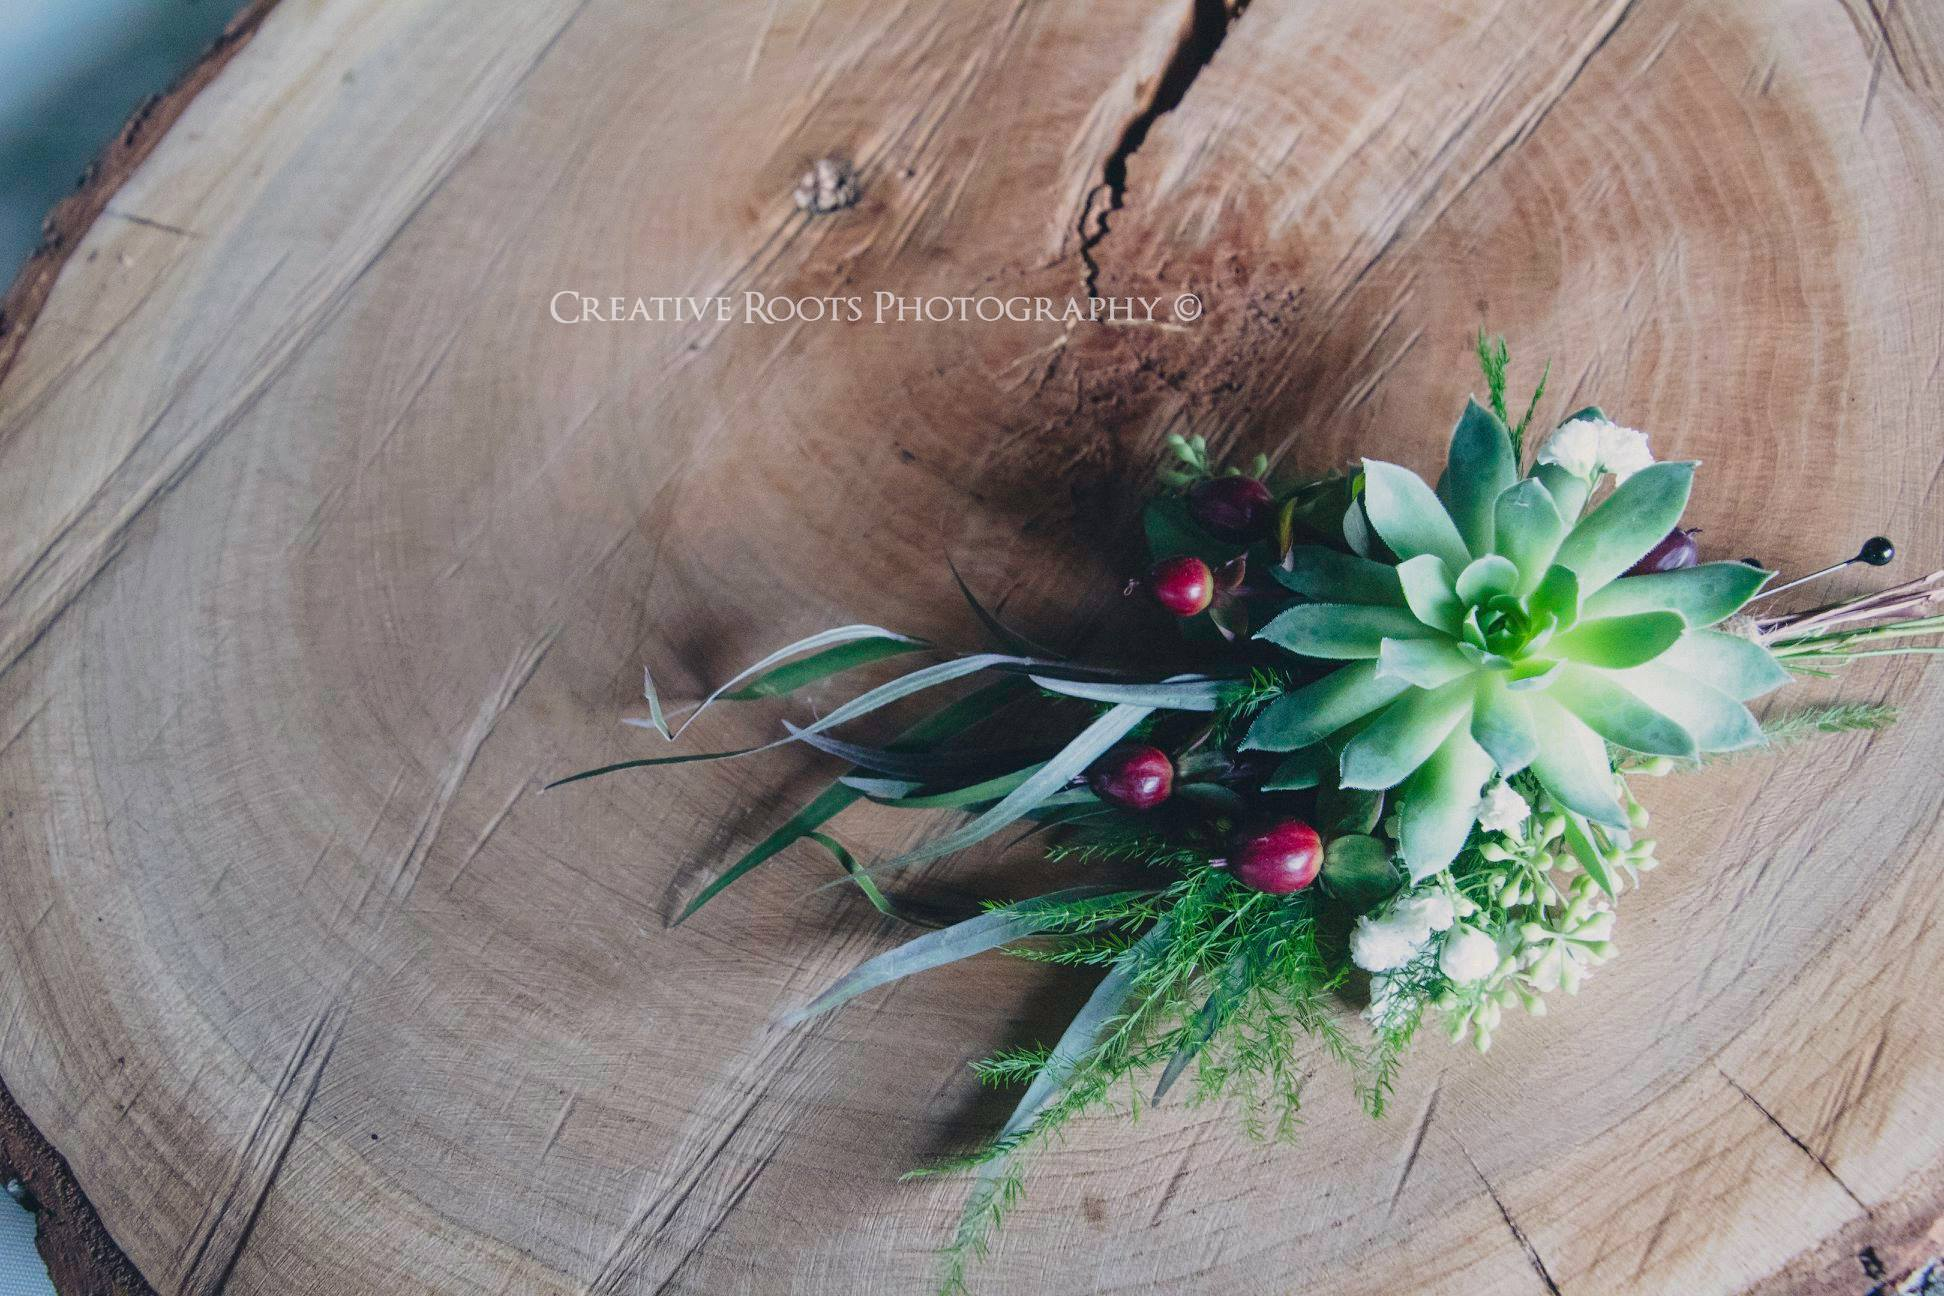 CREATIVE ROOTS PHOTOGRAPHY